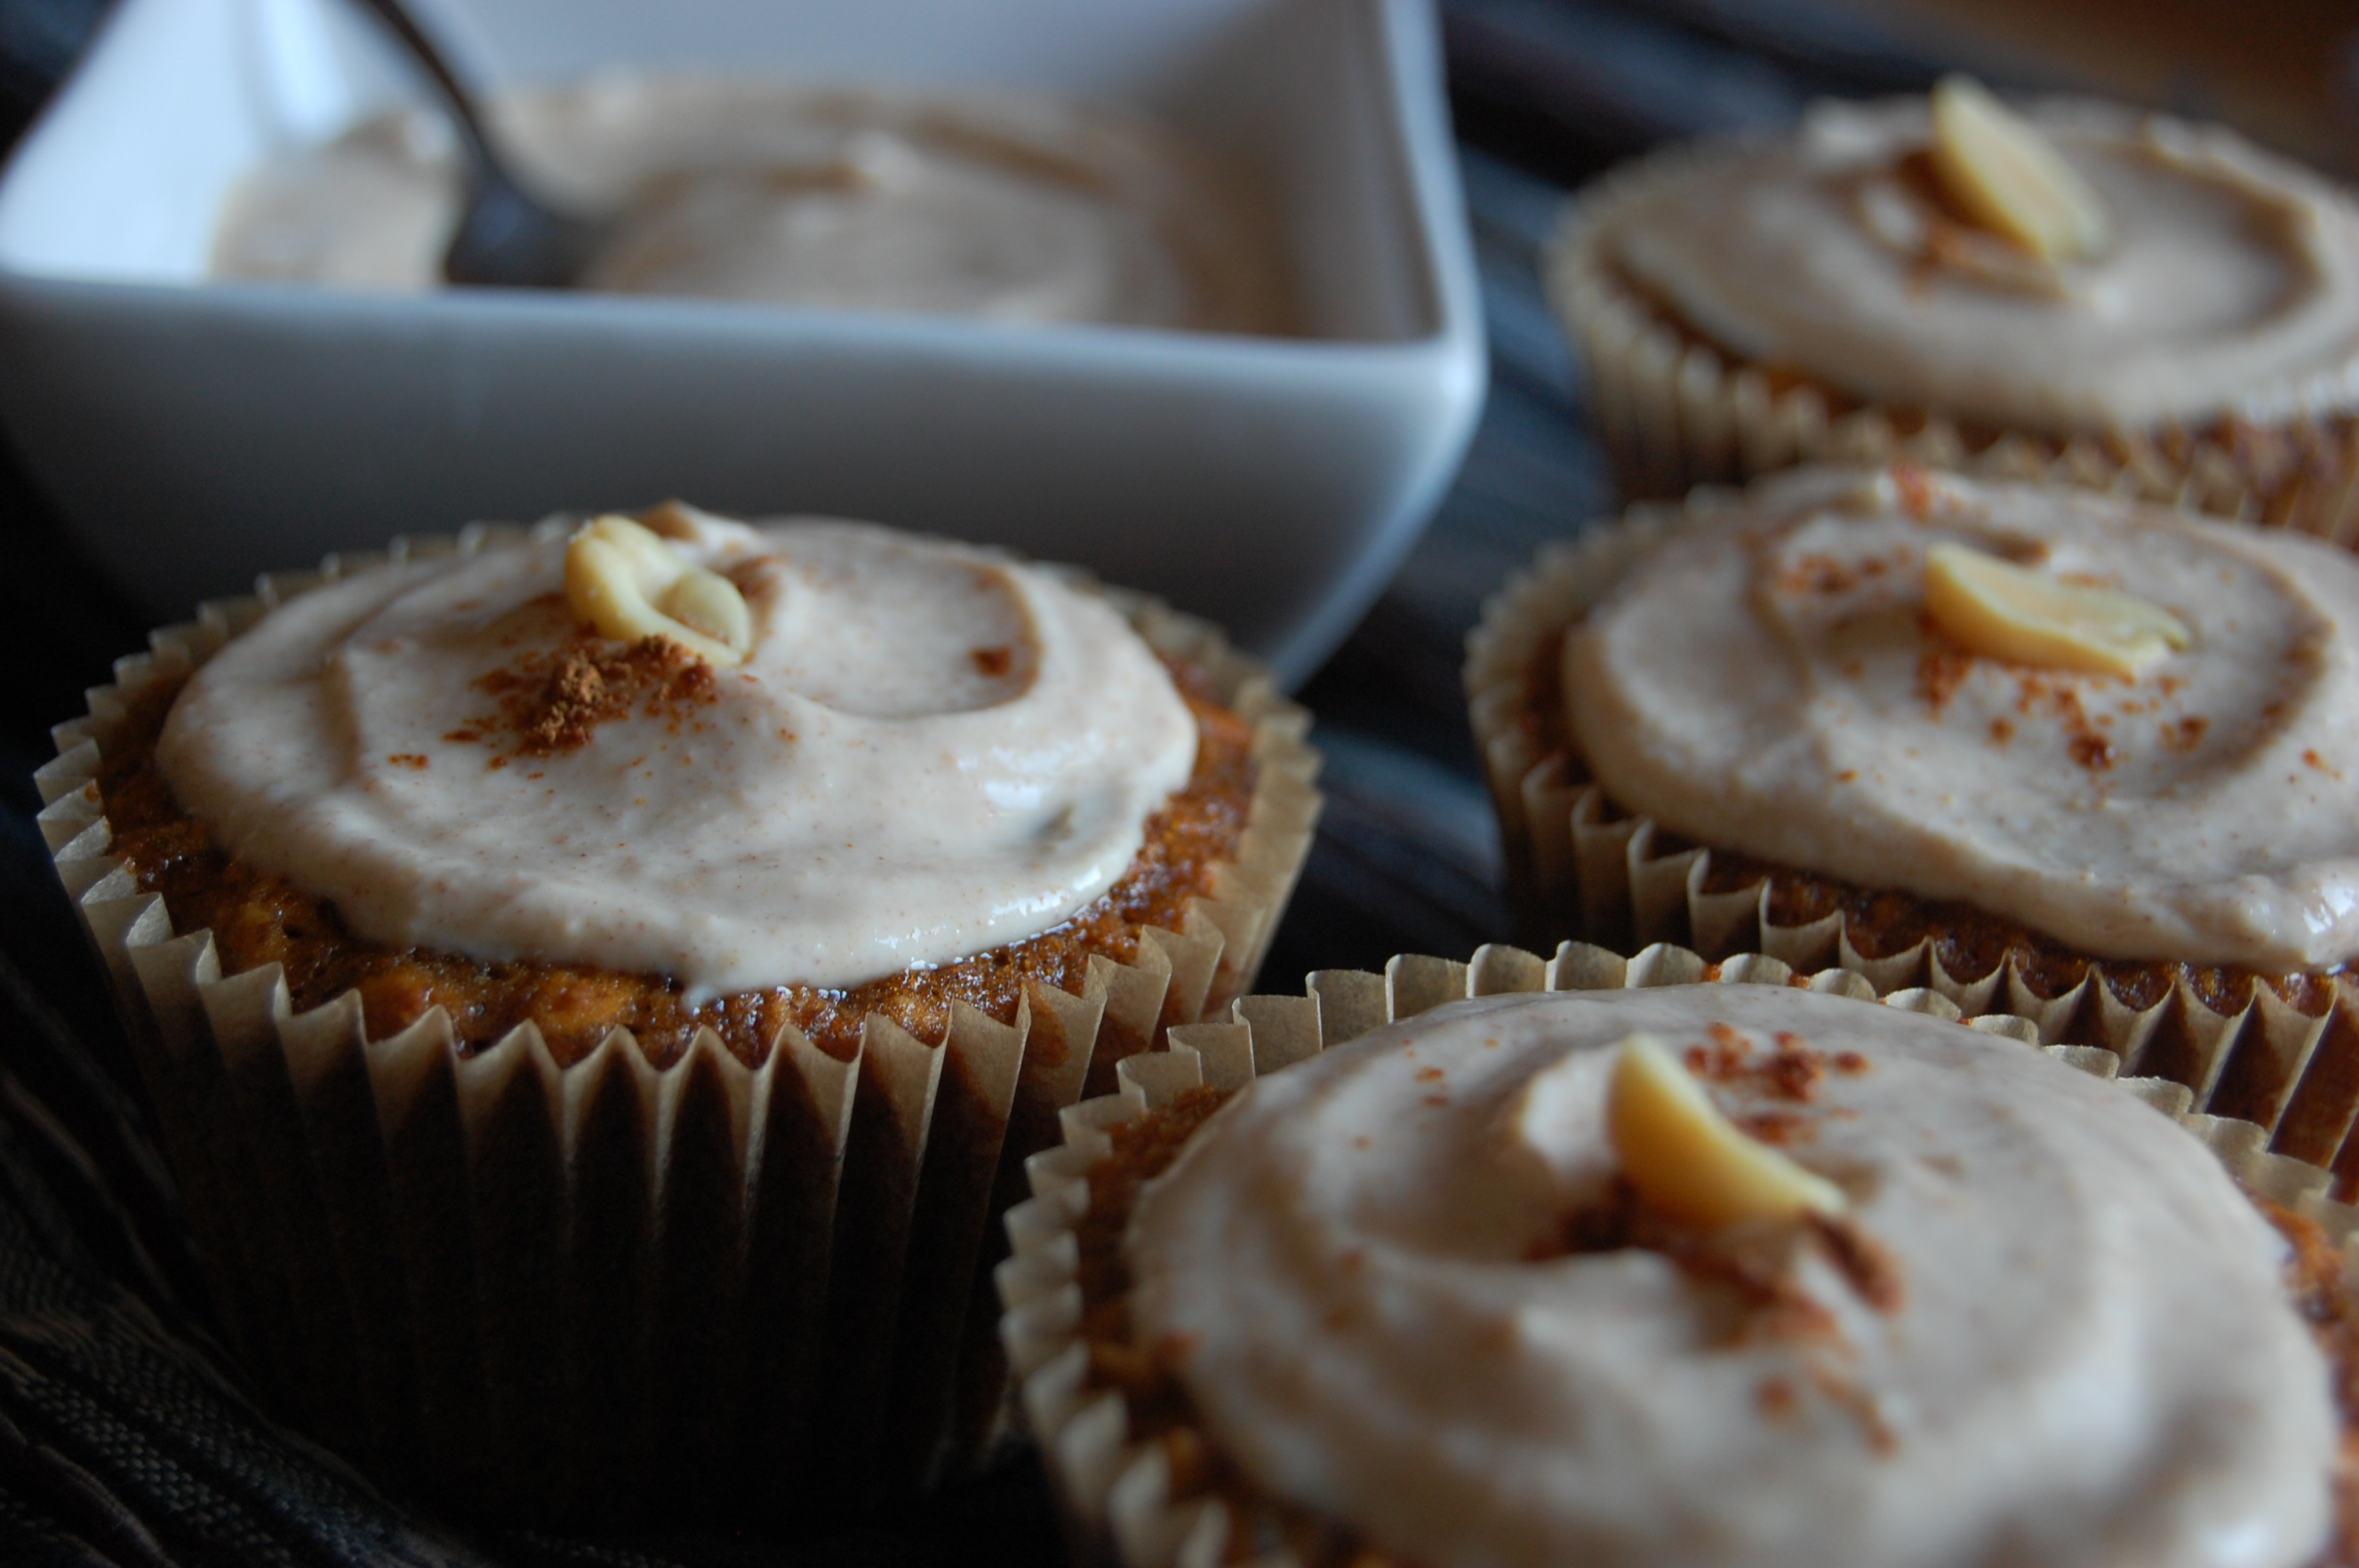 Banana Nut Cupcakes with Peanut Butter Chobani Greek Yogurt Frosting